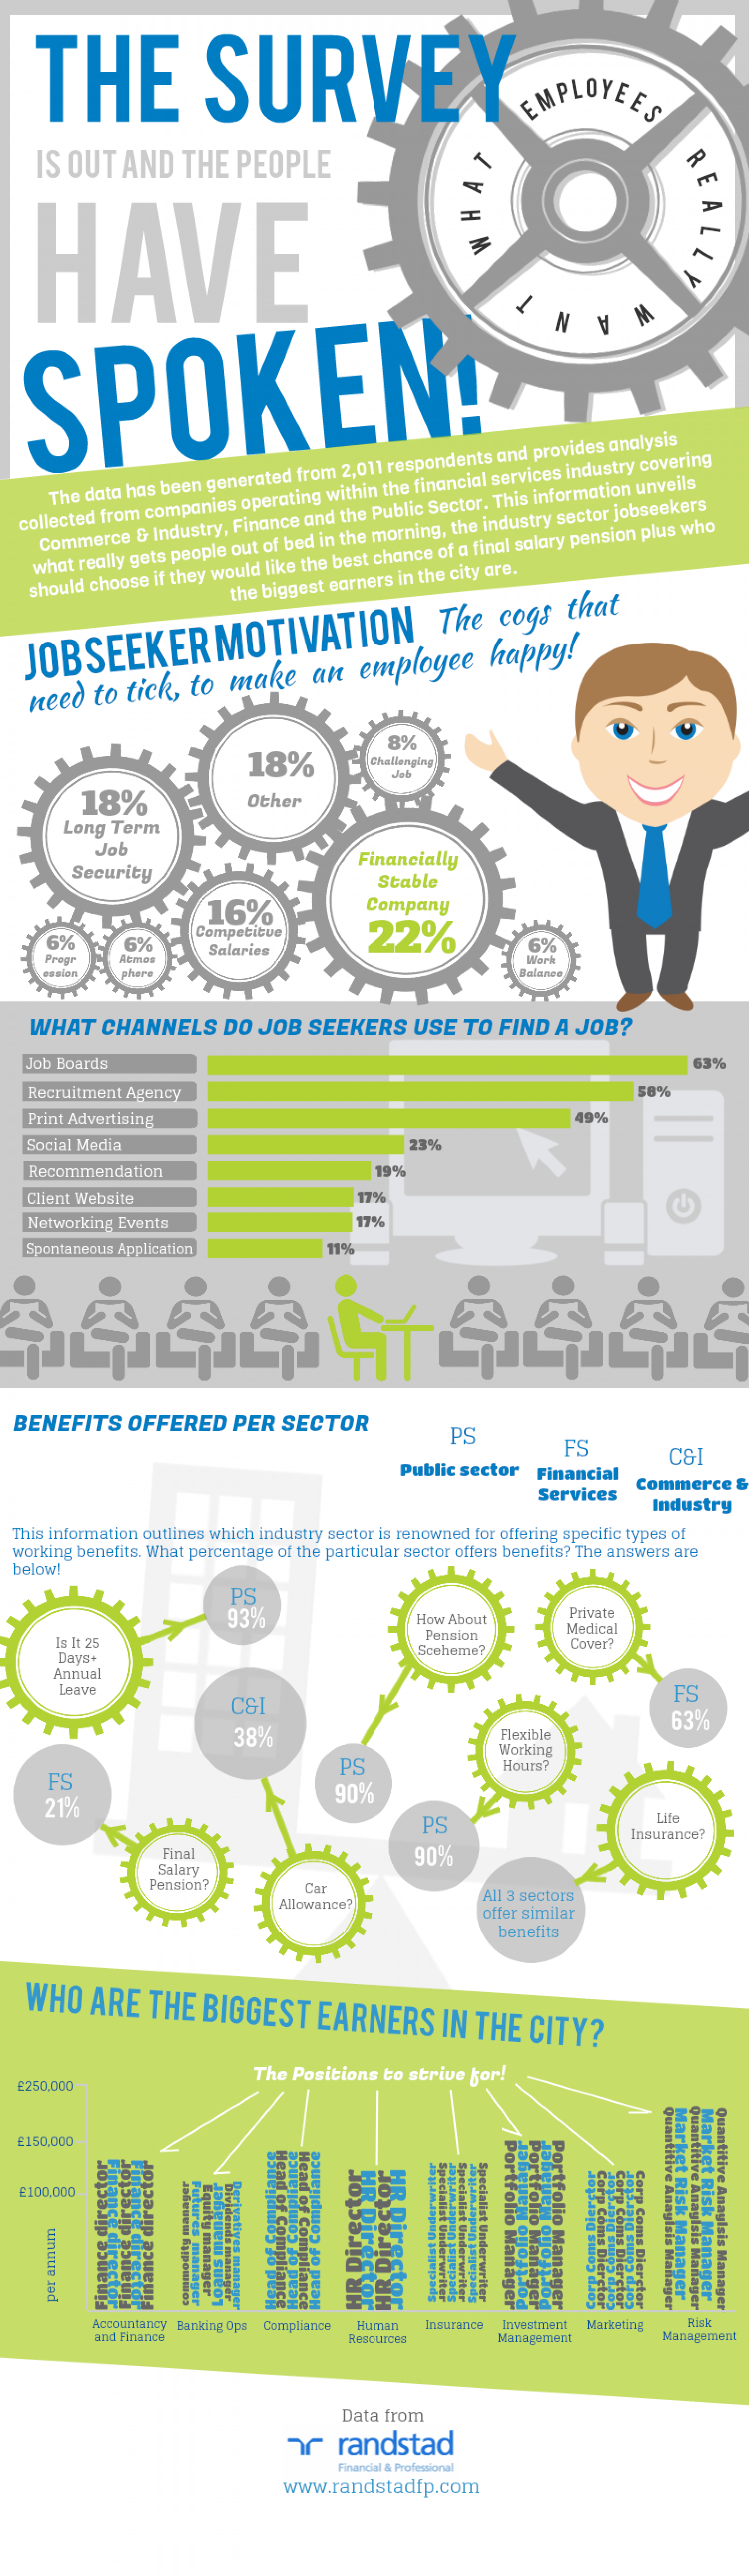 UK Job Benefits by Sector Infographic